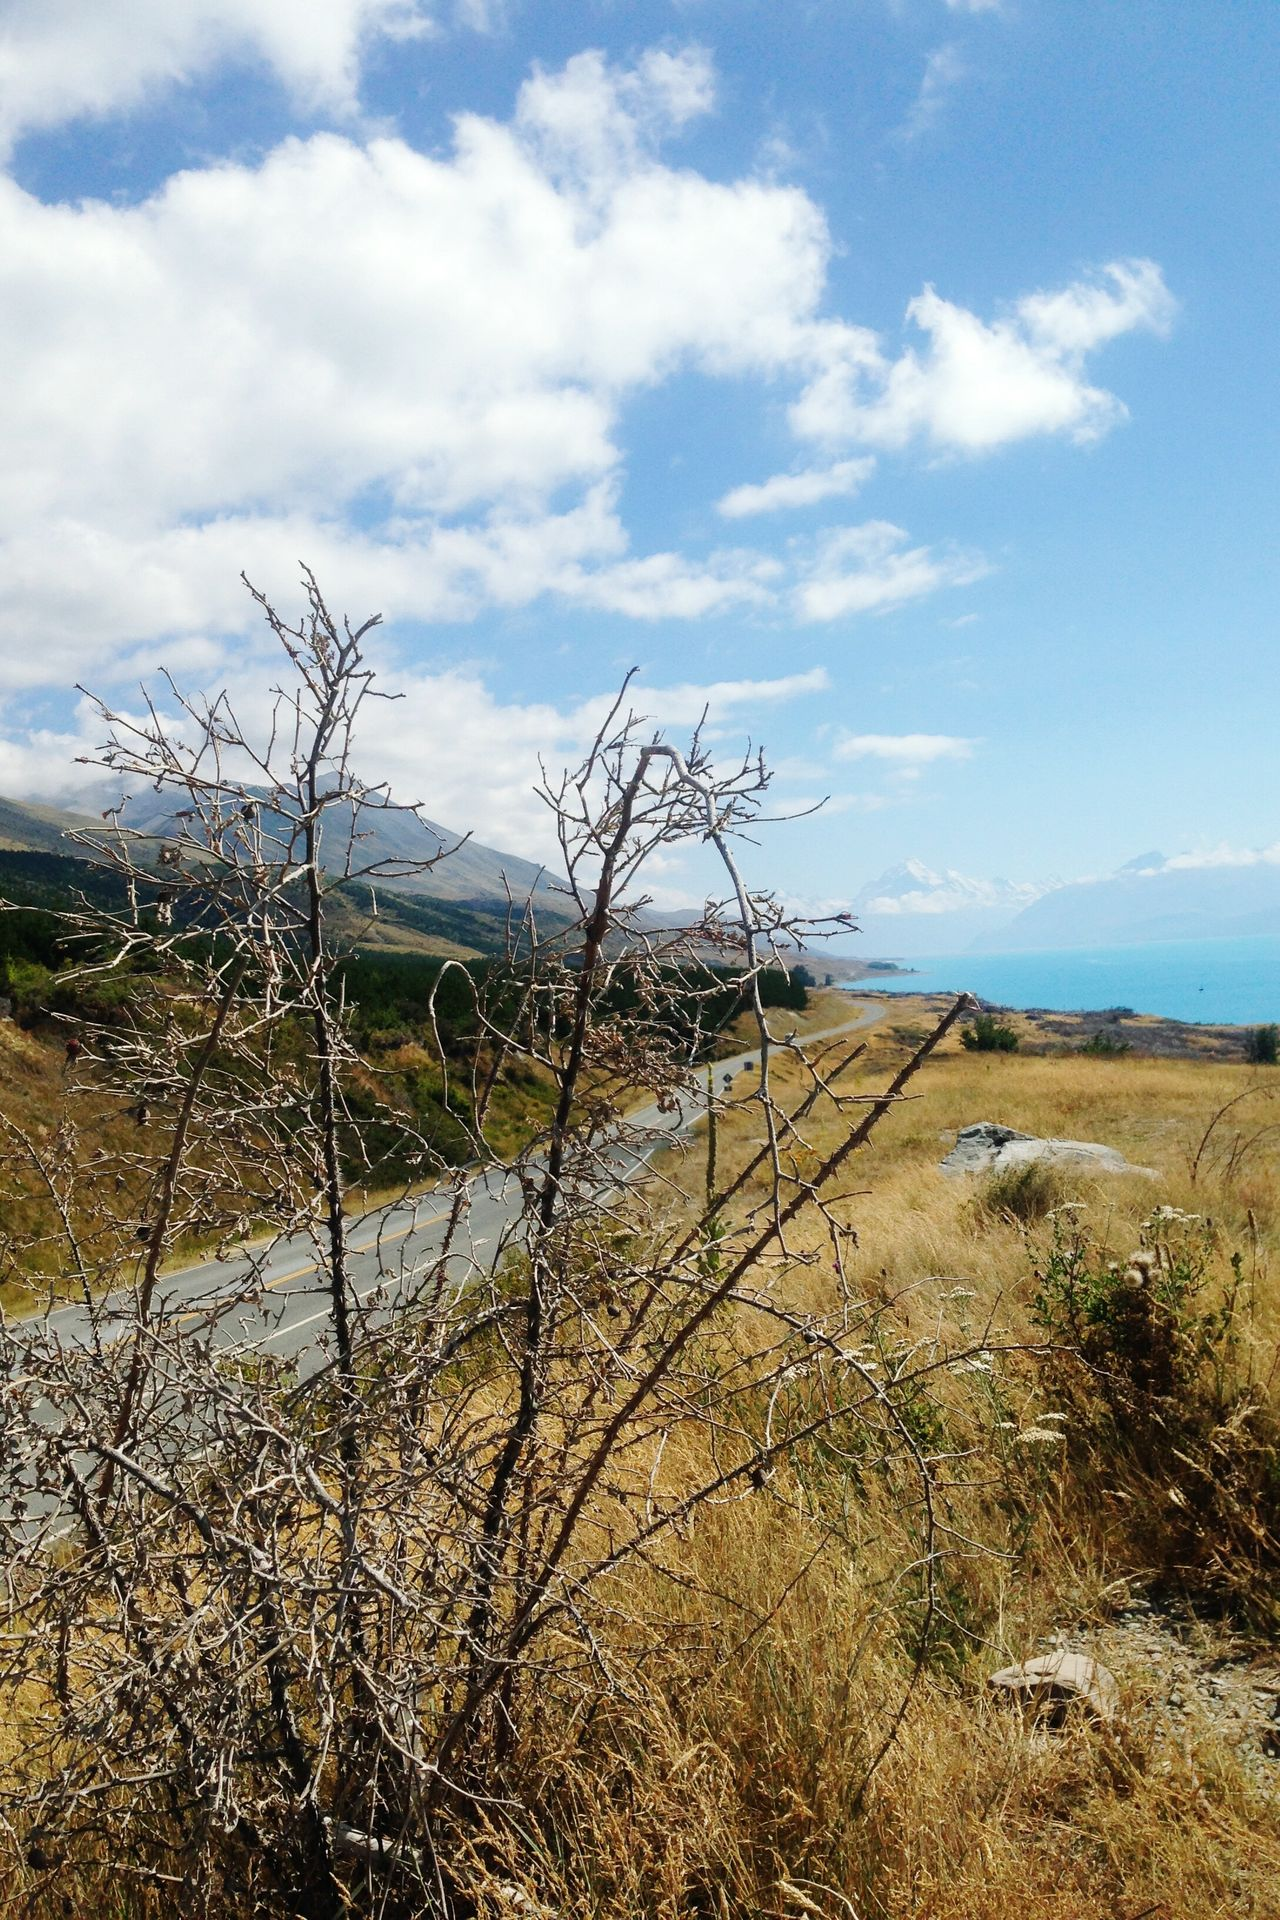 Breathtaking View Scenery Blue Sky Countryside Magnificent Mountains Grass Plants Rural Ben Ohau, New Zealand.